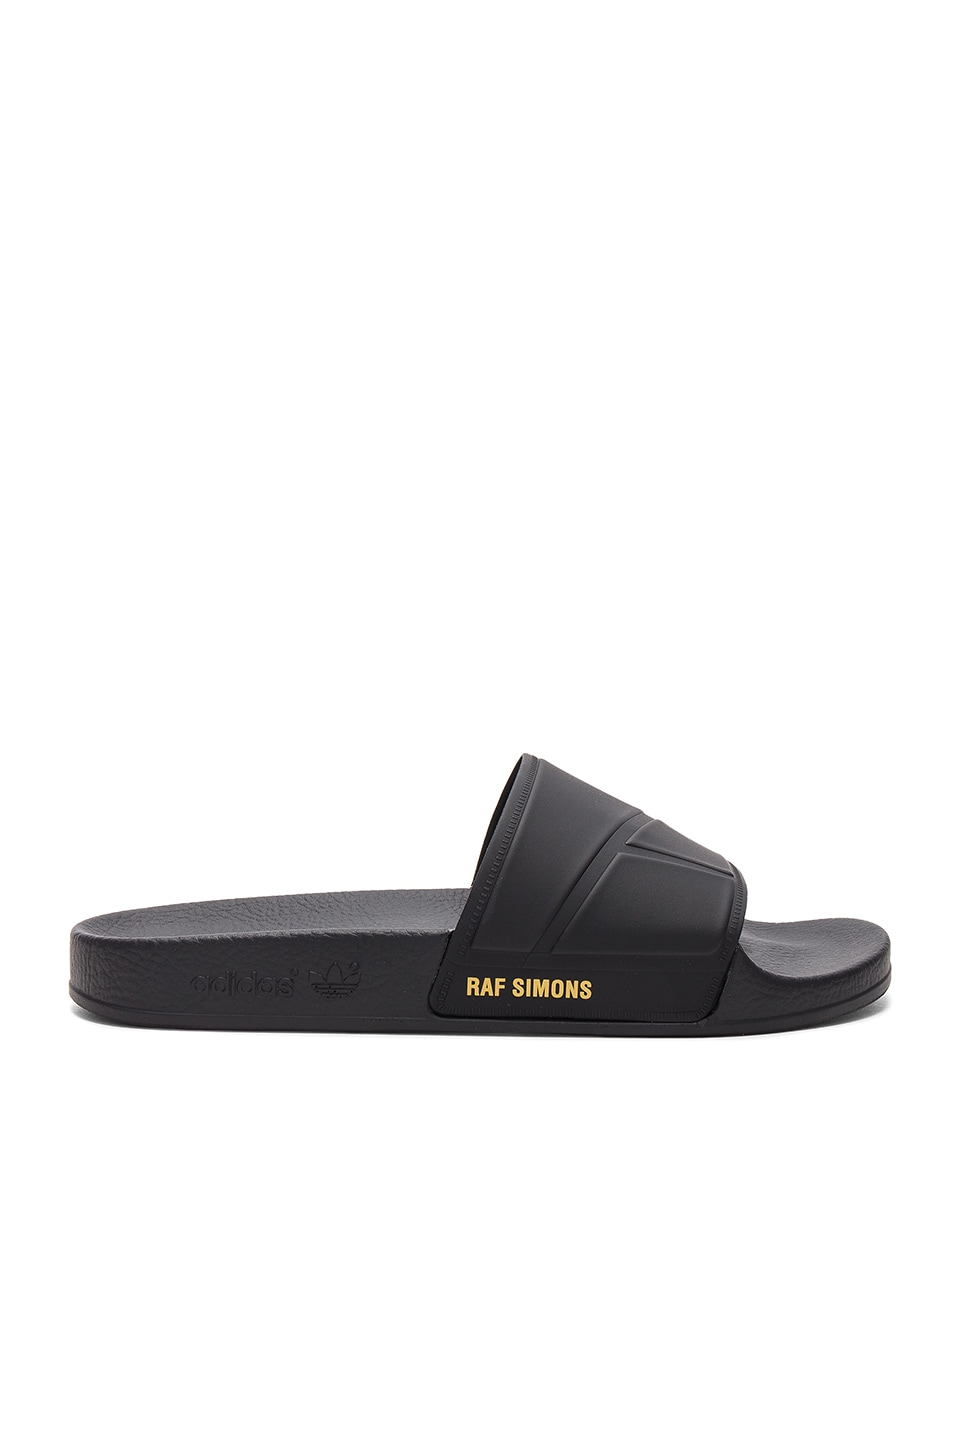 adidas by Raf Simons Bunny Adilette Slide in Black